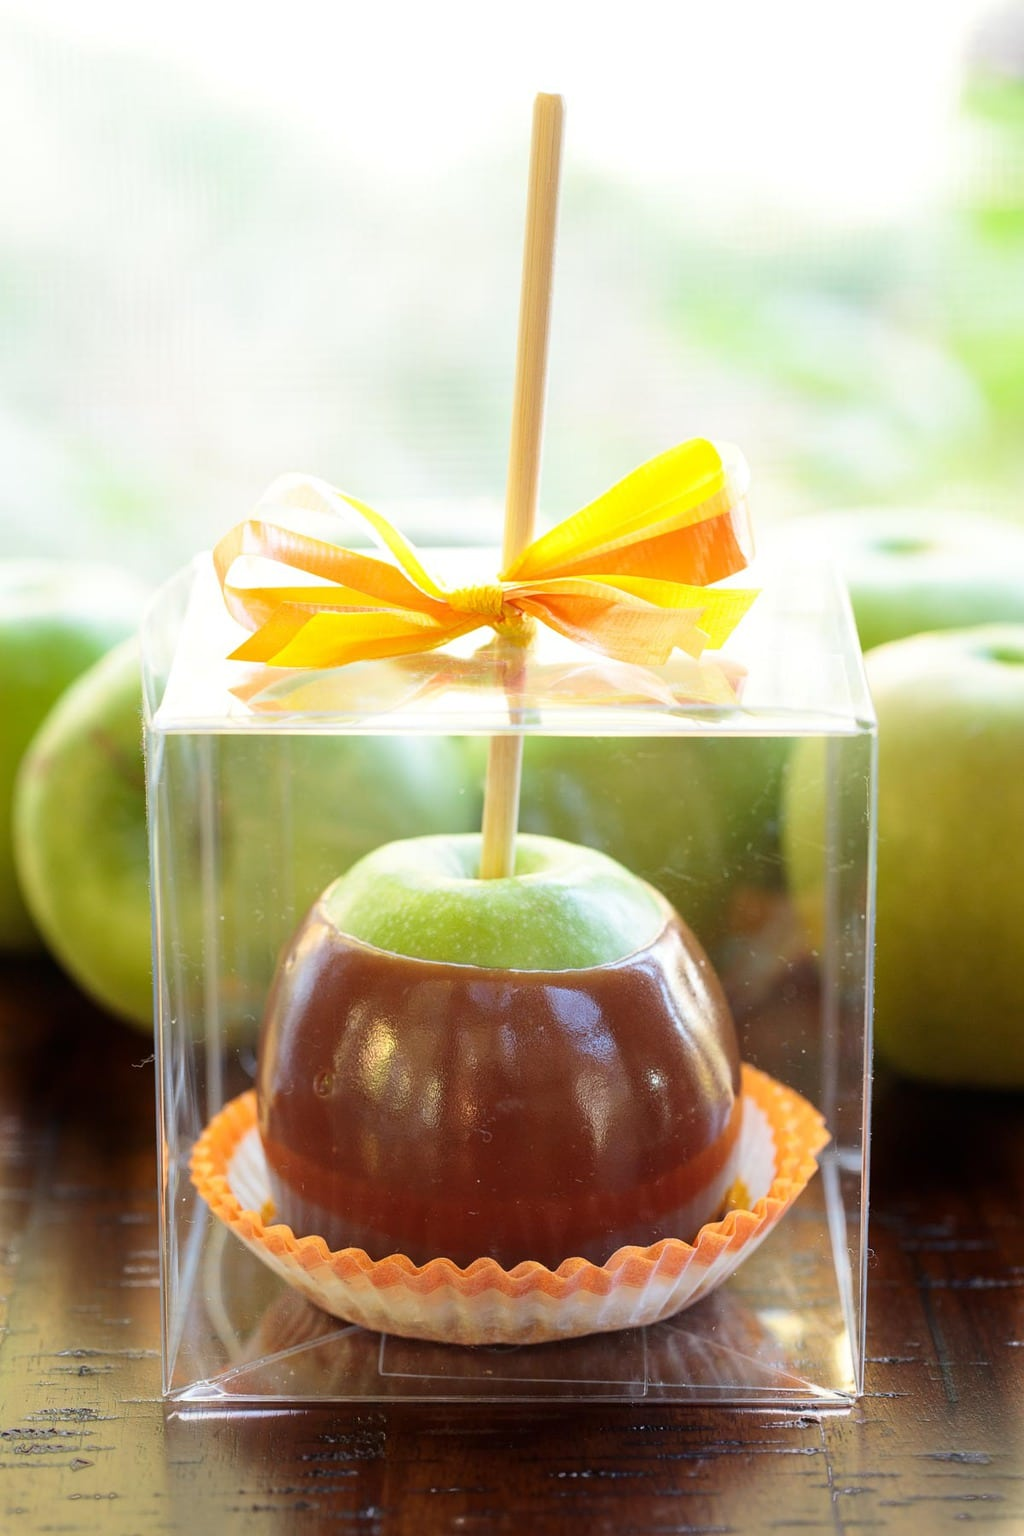 Photo of an Easy Homemade Caramel Apple in a decorative clear plastic container with an orange and yellow bow on top.